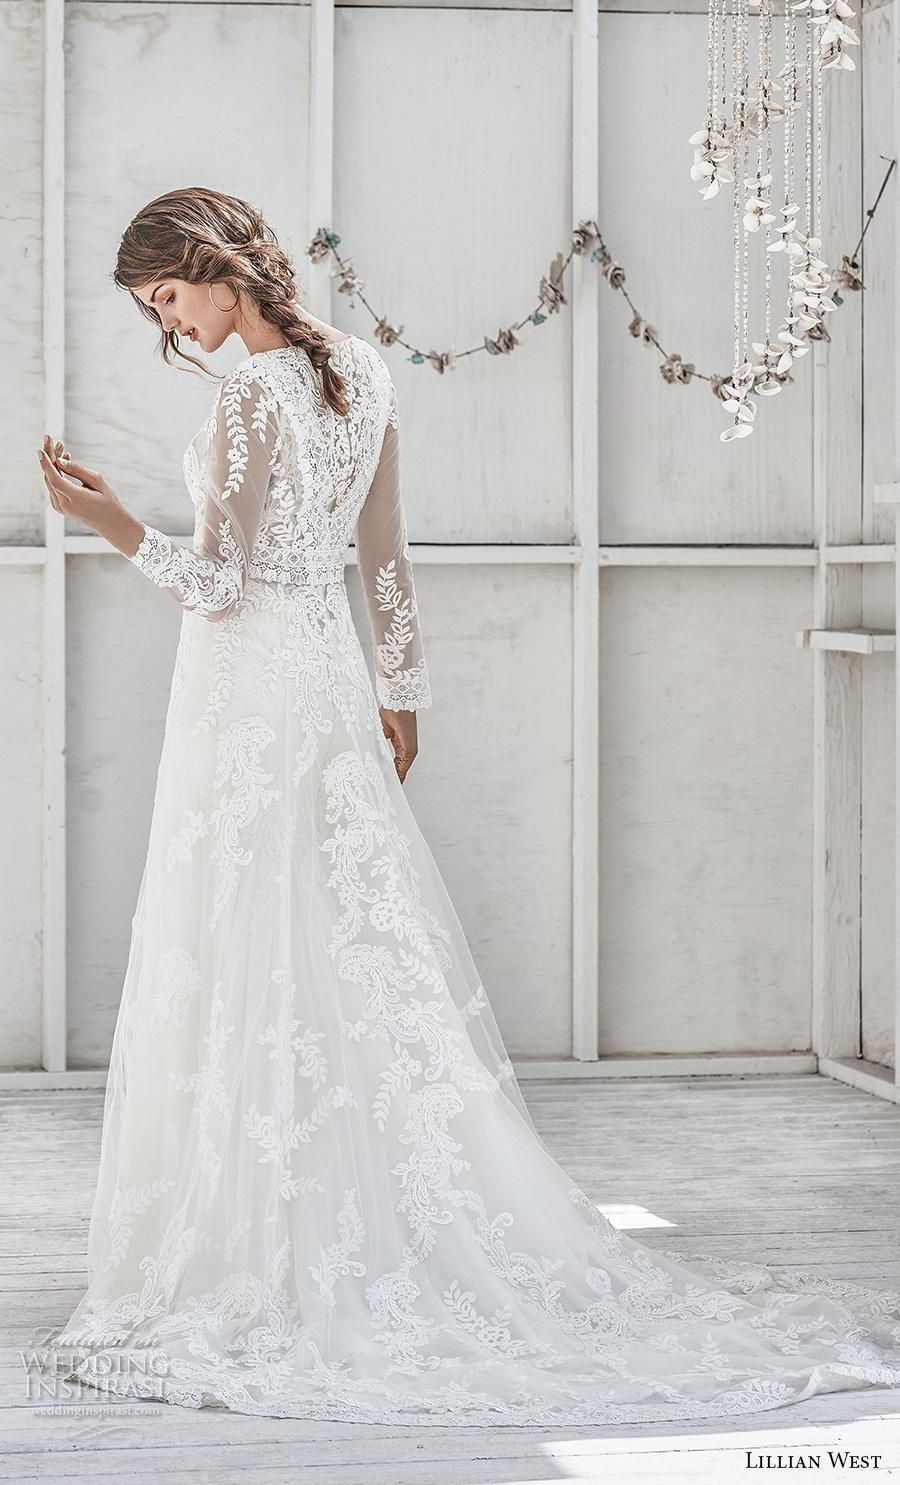 Lillian west spring wedding dresses in f gowns